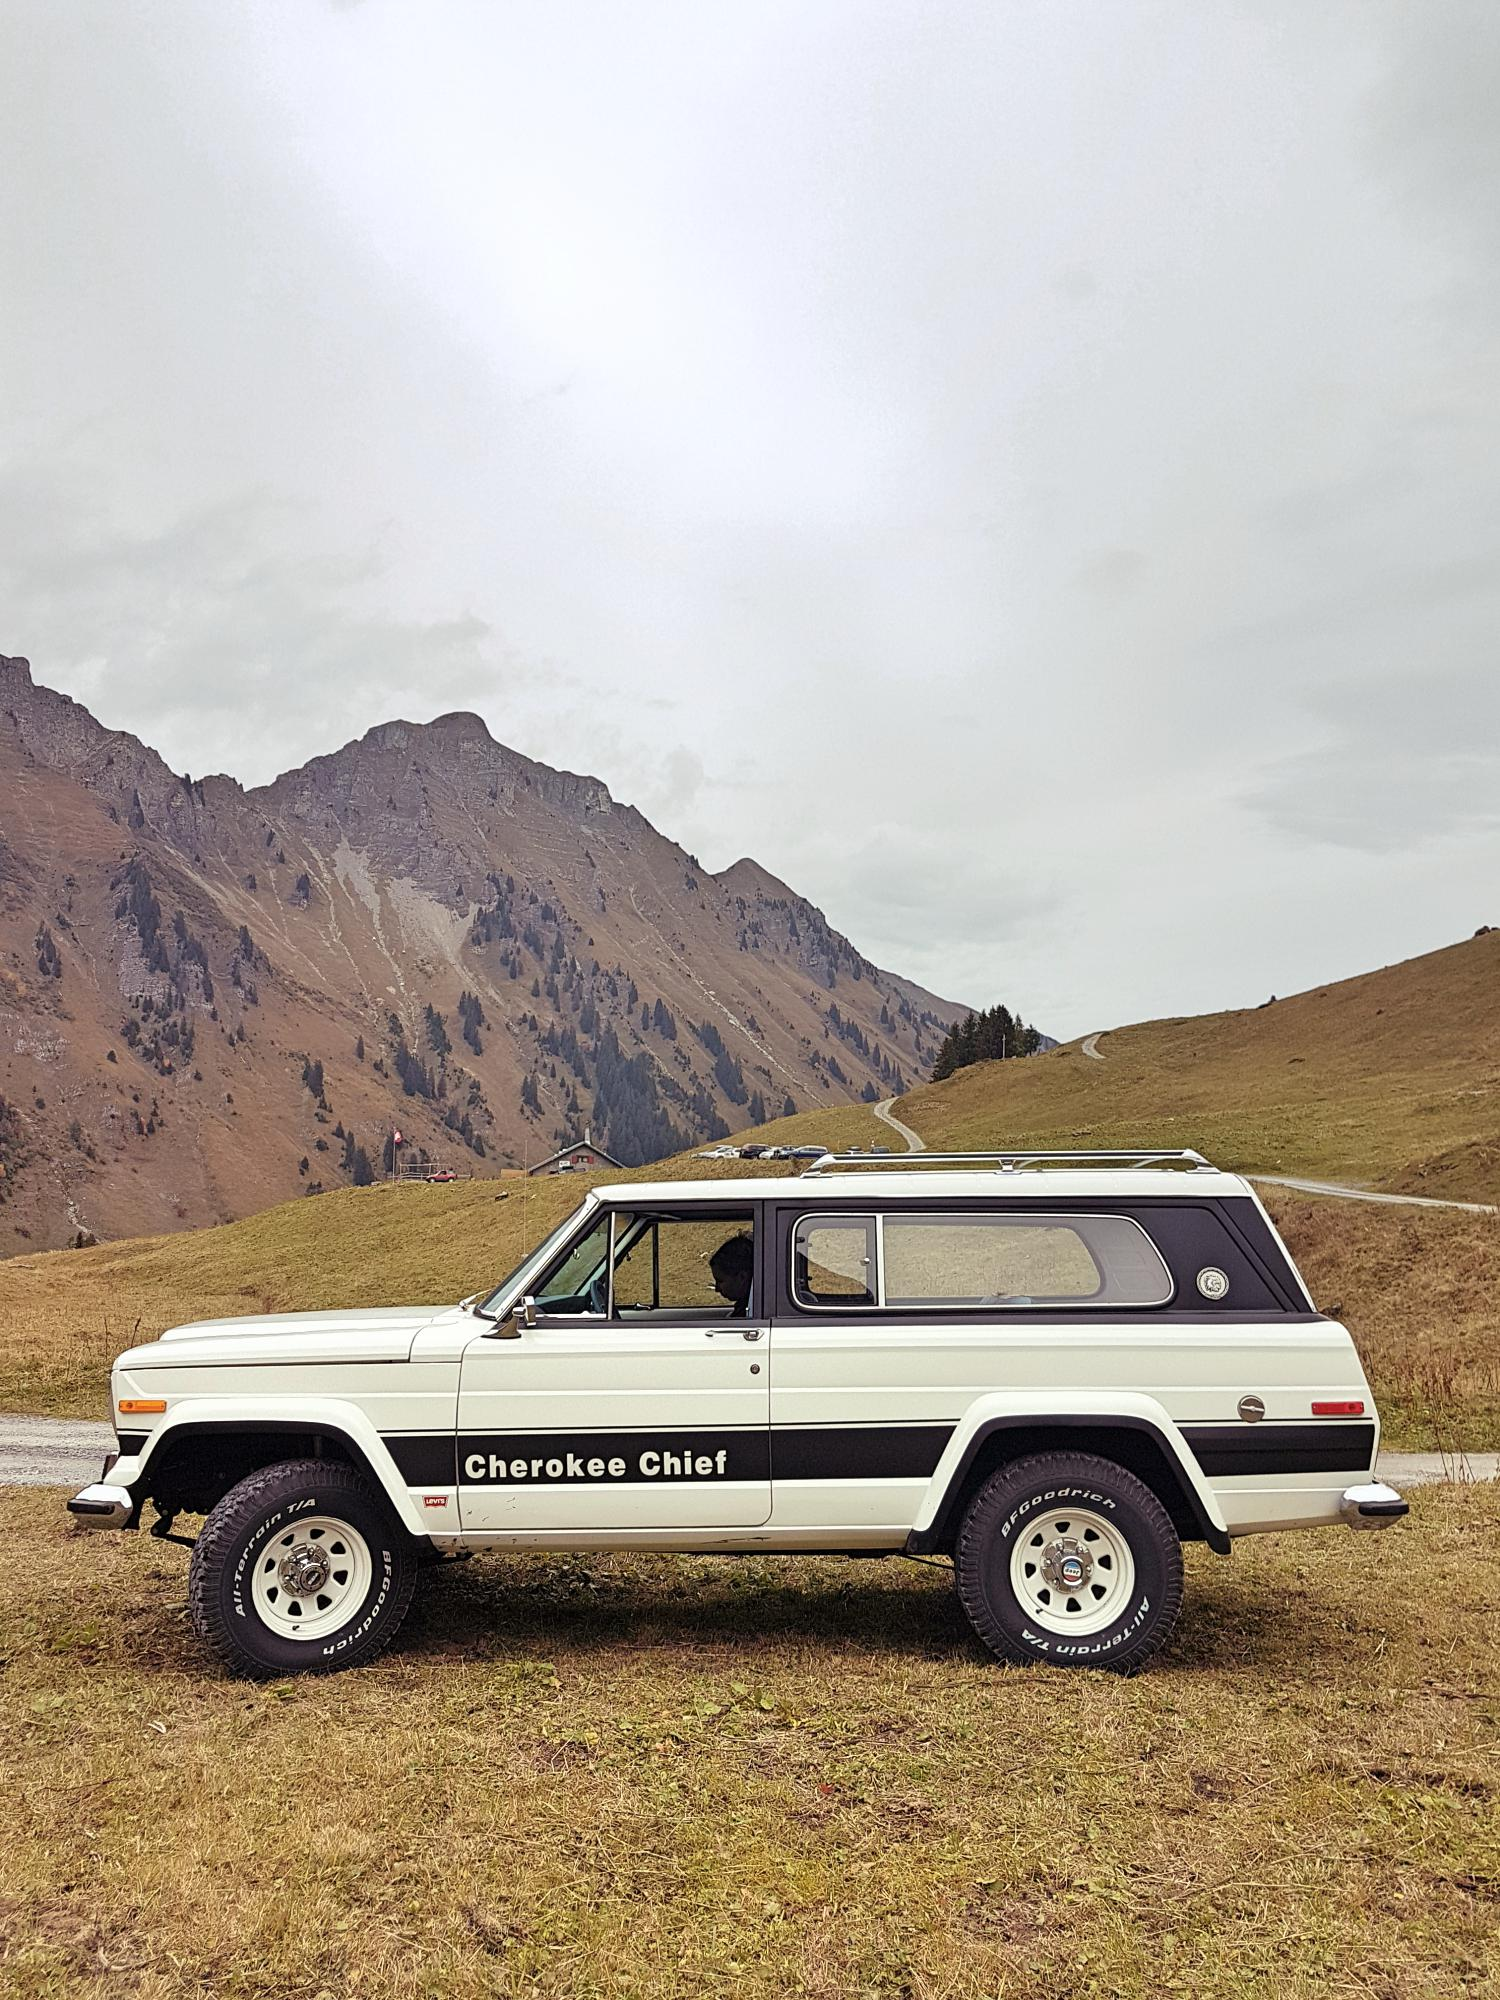 jeep-cherokee-chief-1978-shooting-morgins-switzerland-38.jpg